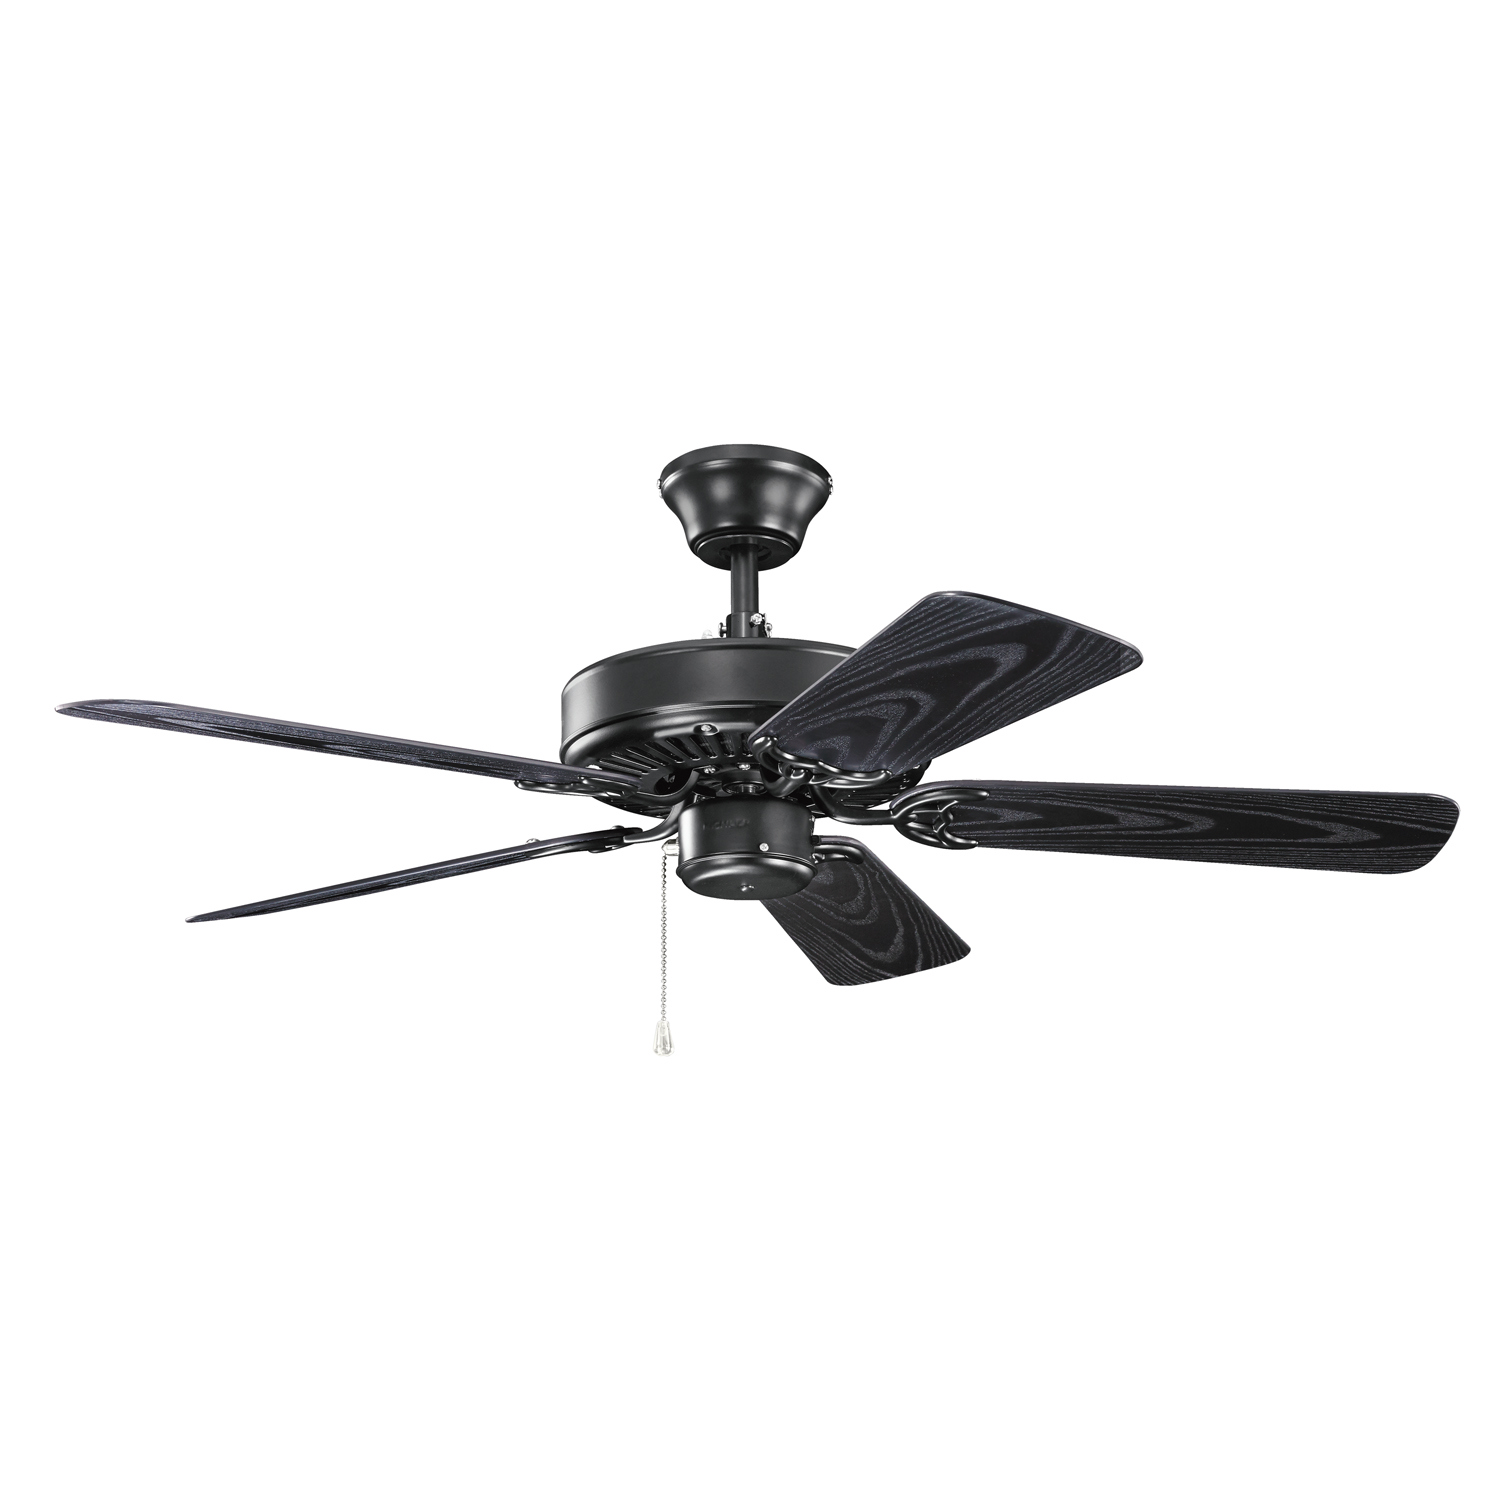 42 inchCeiling Fan from the Basics collection by Kichler 414SBK